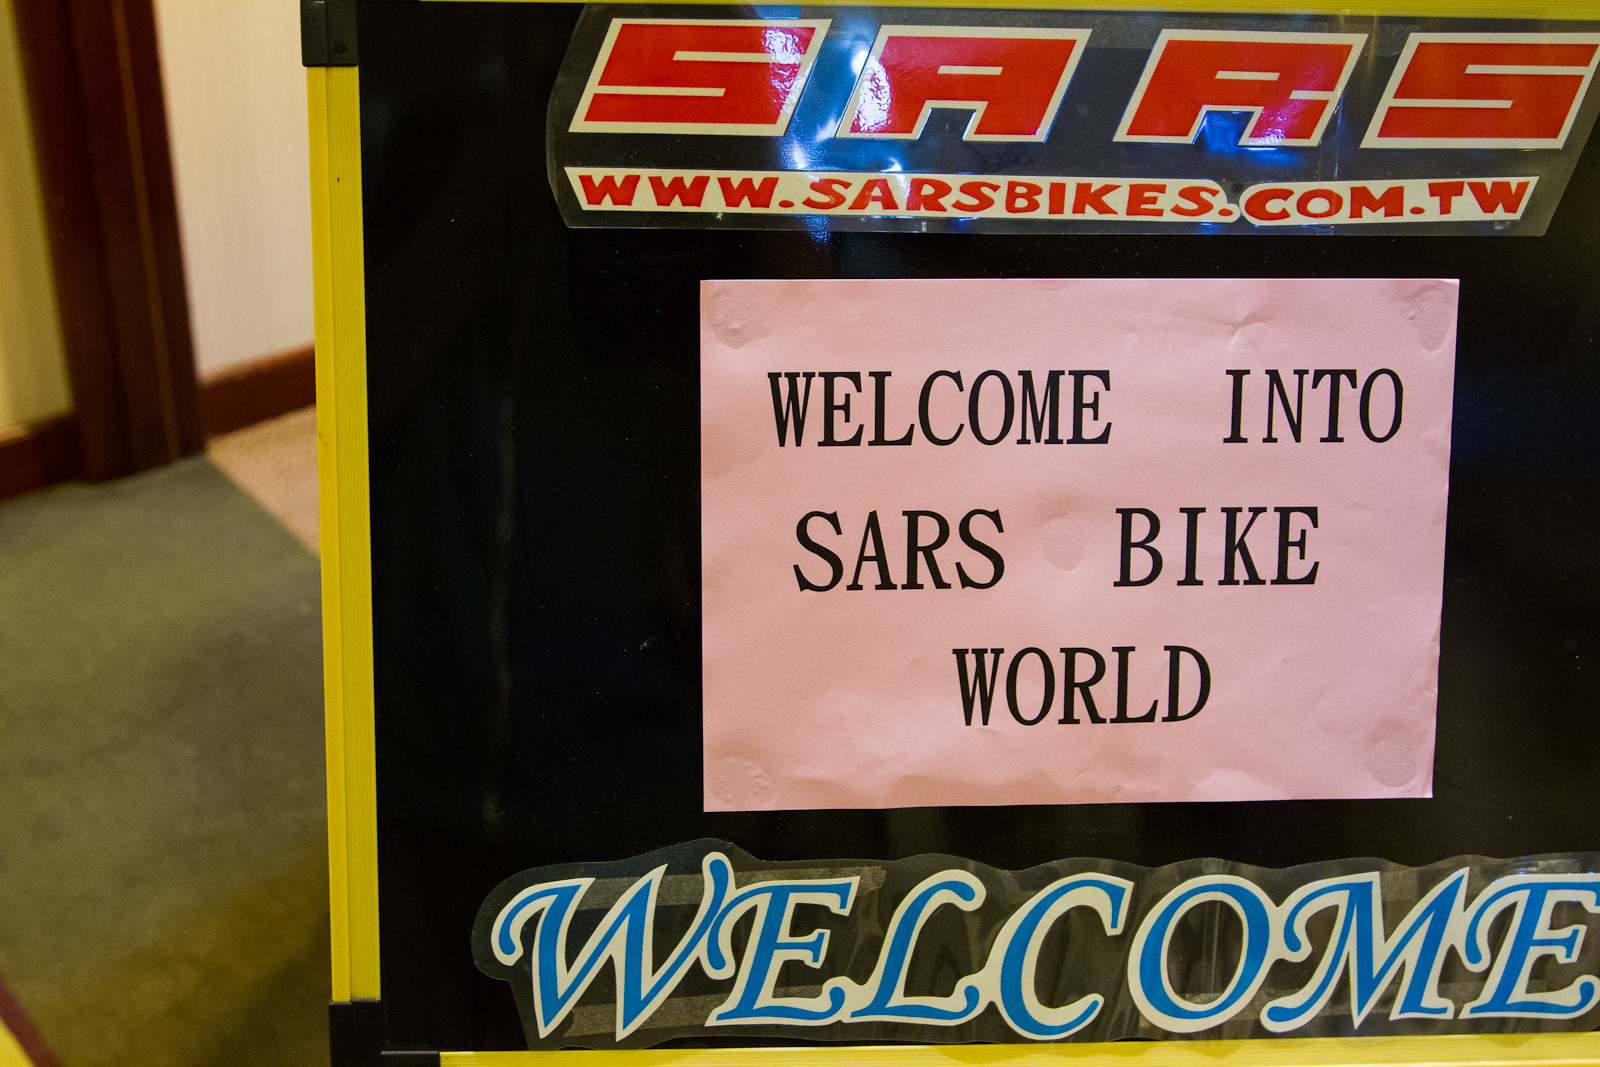 Lost in Translation: Welcome to Taichung Bike Week - 2013 and 2014 Products from Taichung Bike Week - Mountain Biking Pictures - Vital MTB